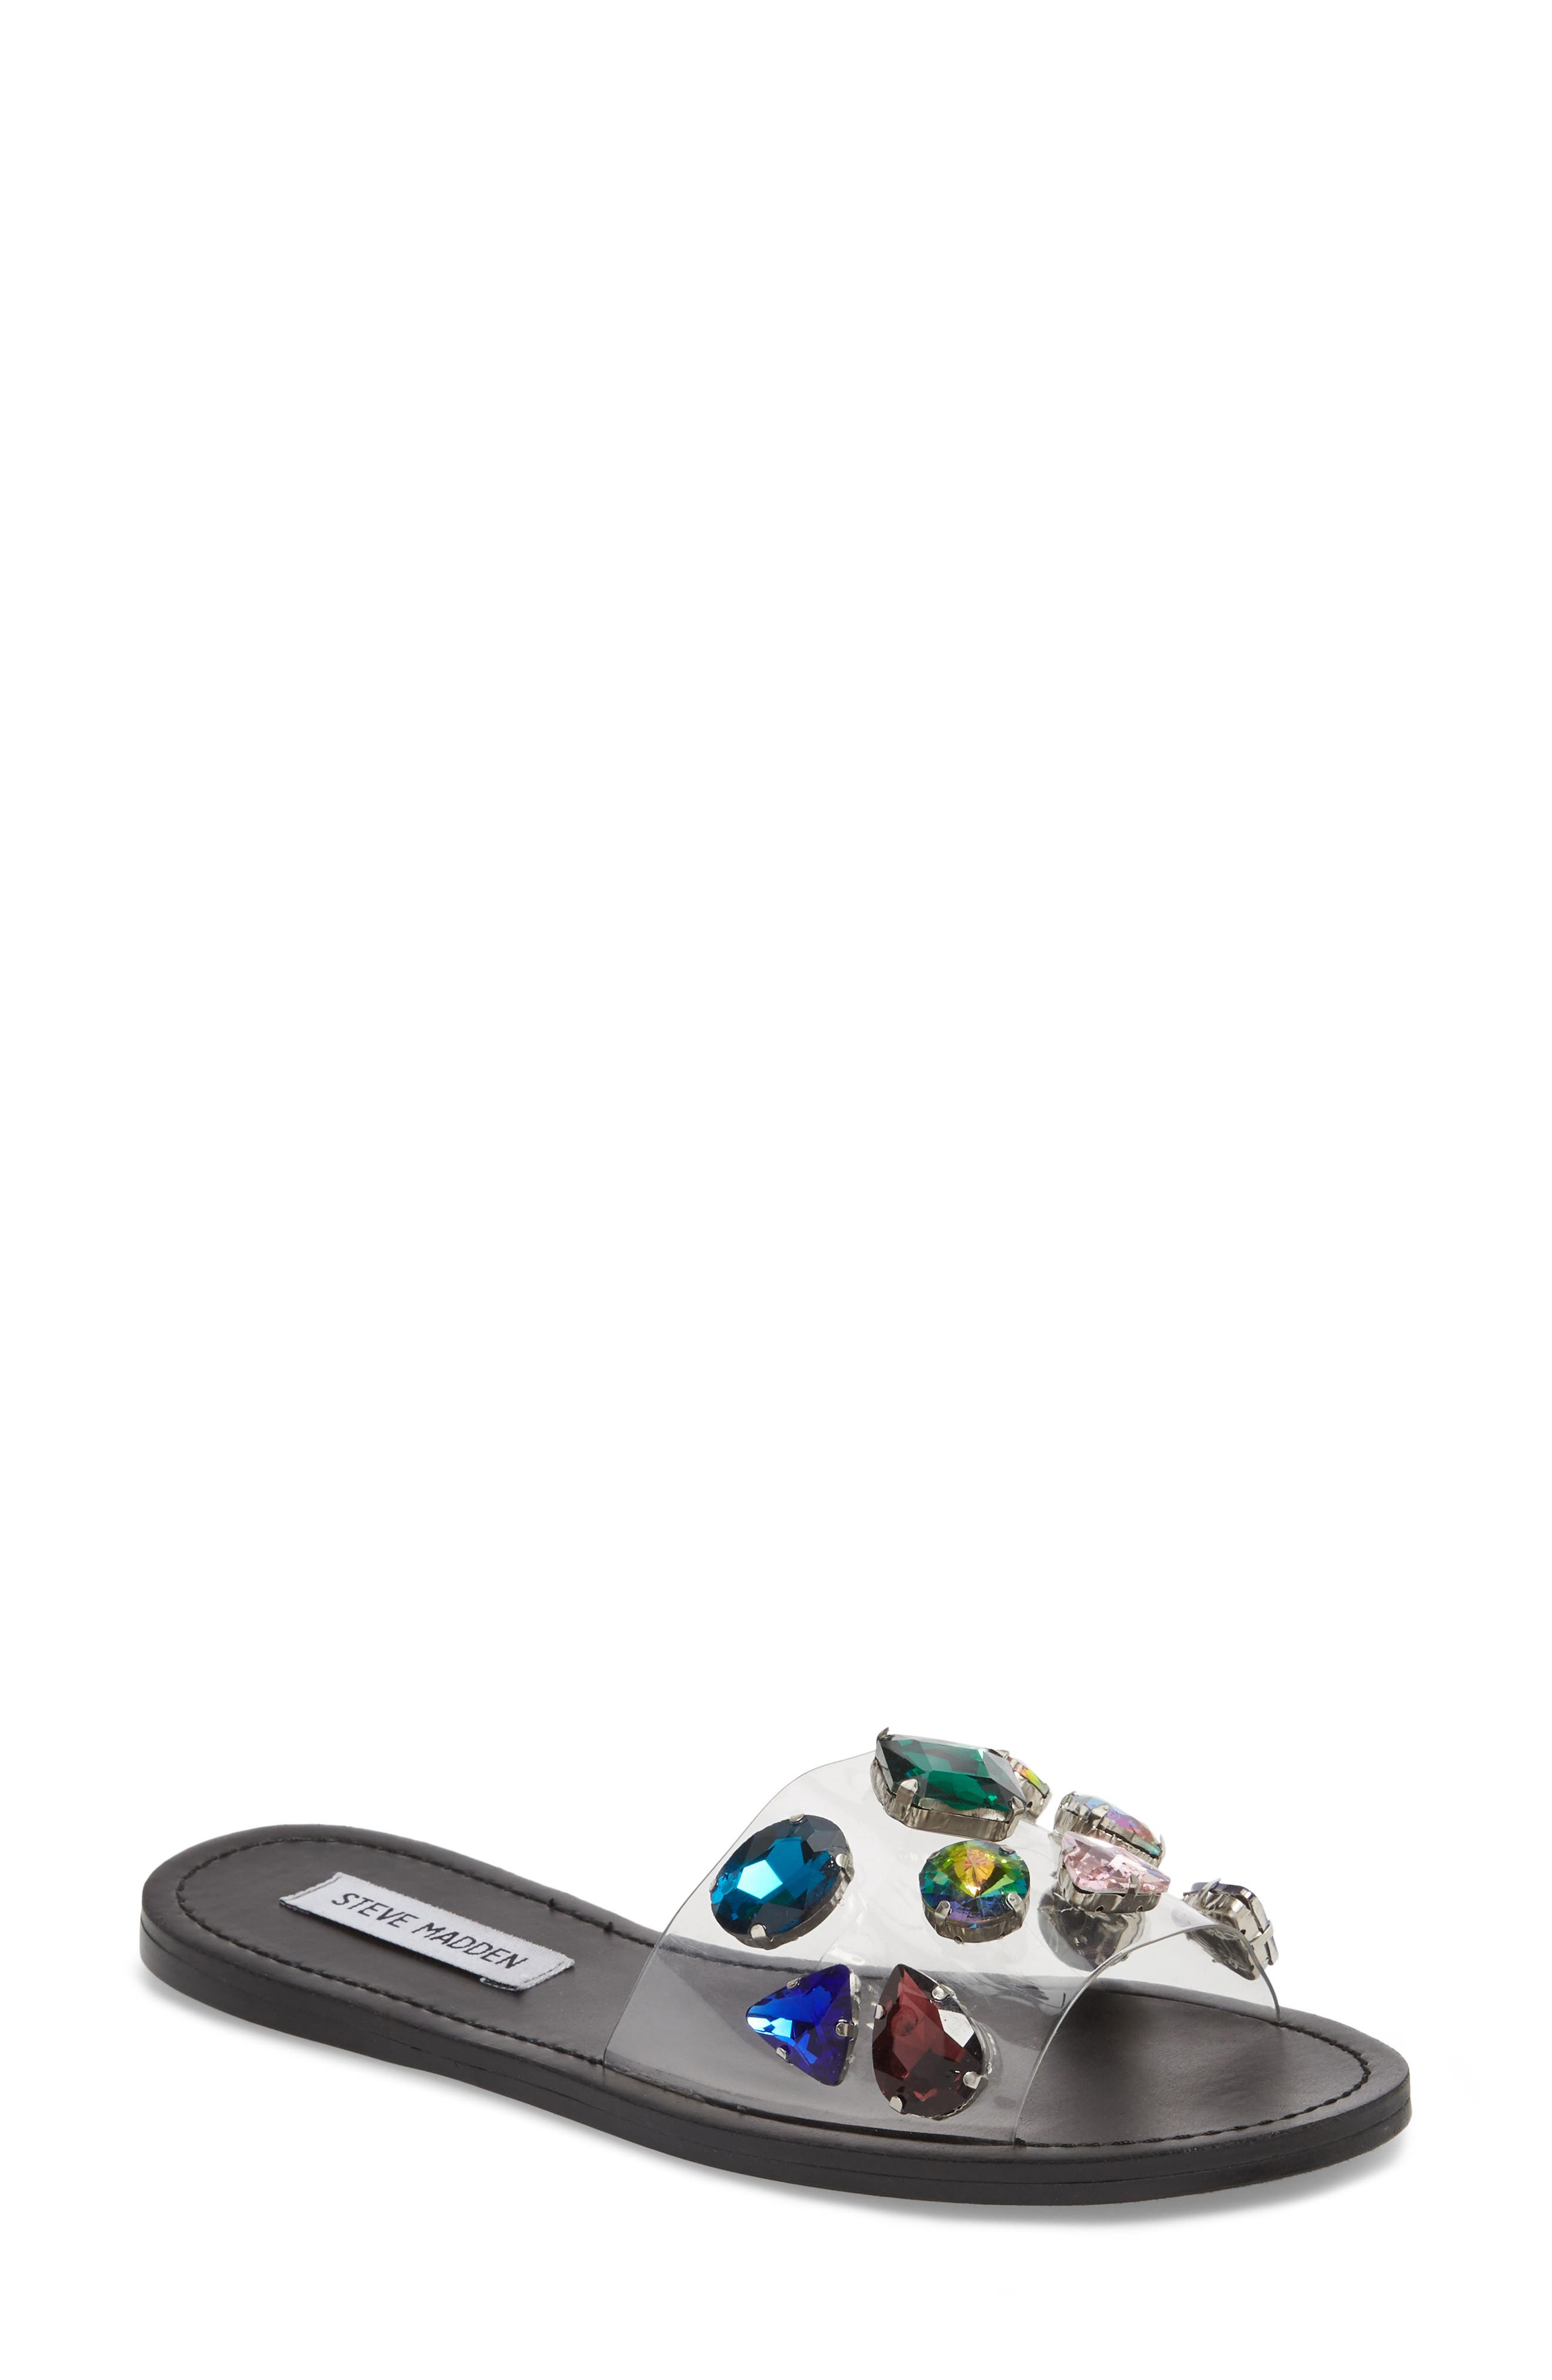 Steve Madden Rosalyn Embellished Slide Sandal (Women)